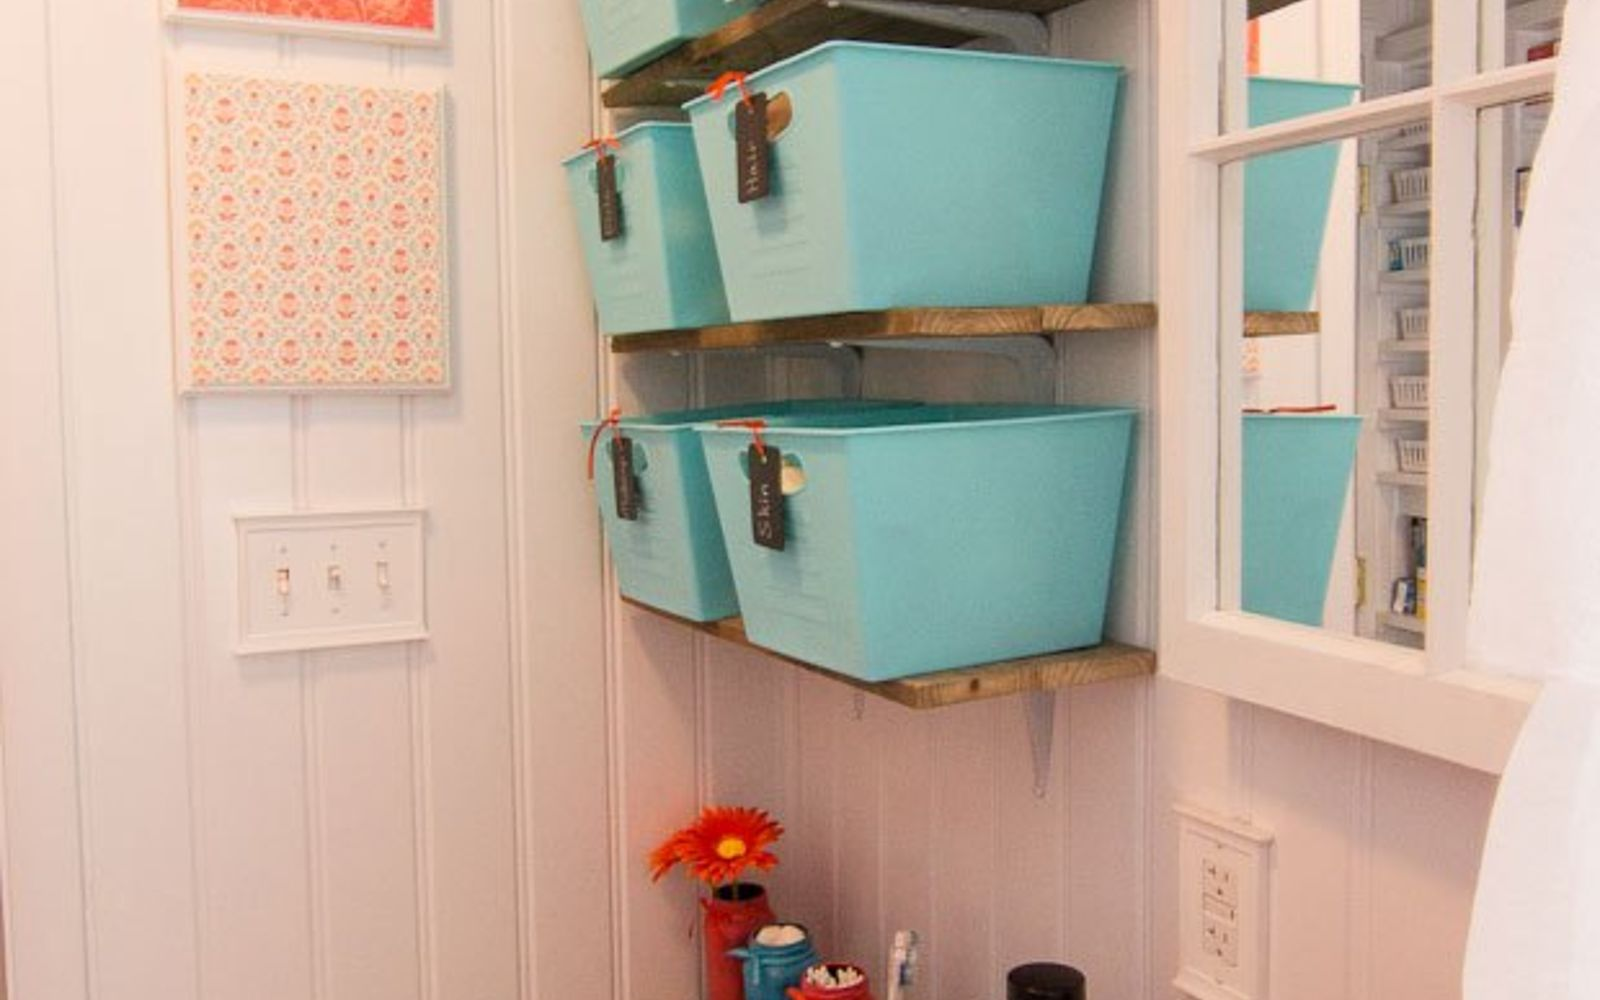 s 11 actually helpful tricks for decorating a small bathroom, bathroom ideas, Make the room bigger with beadboard wallpaper